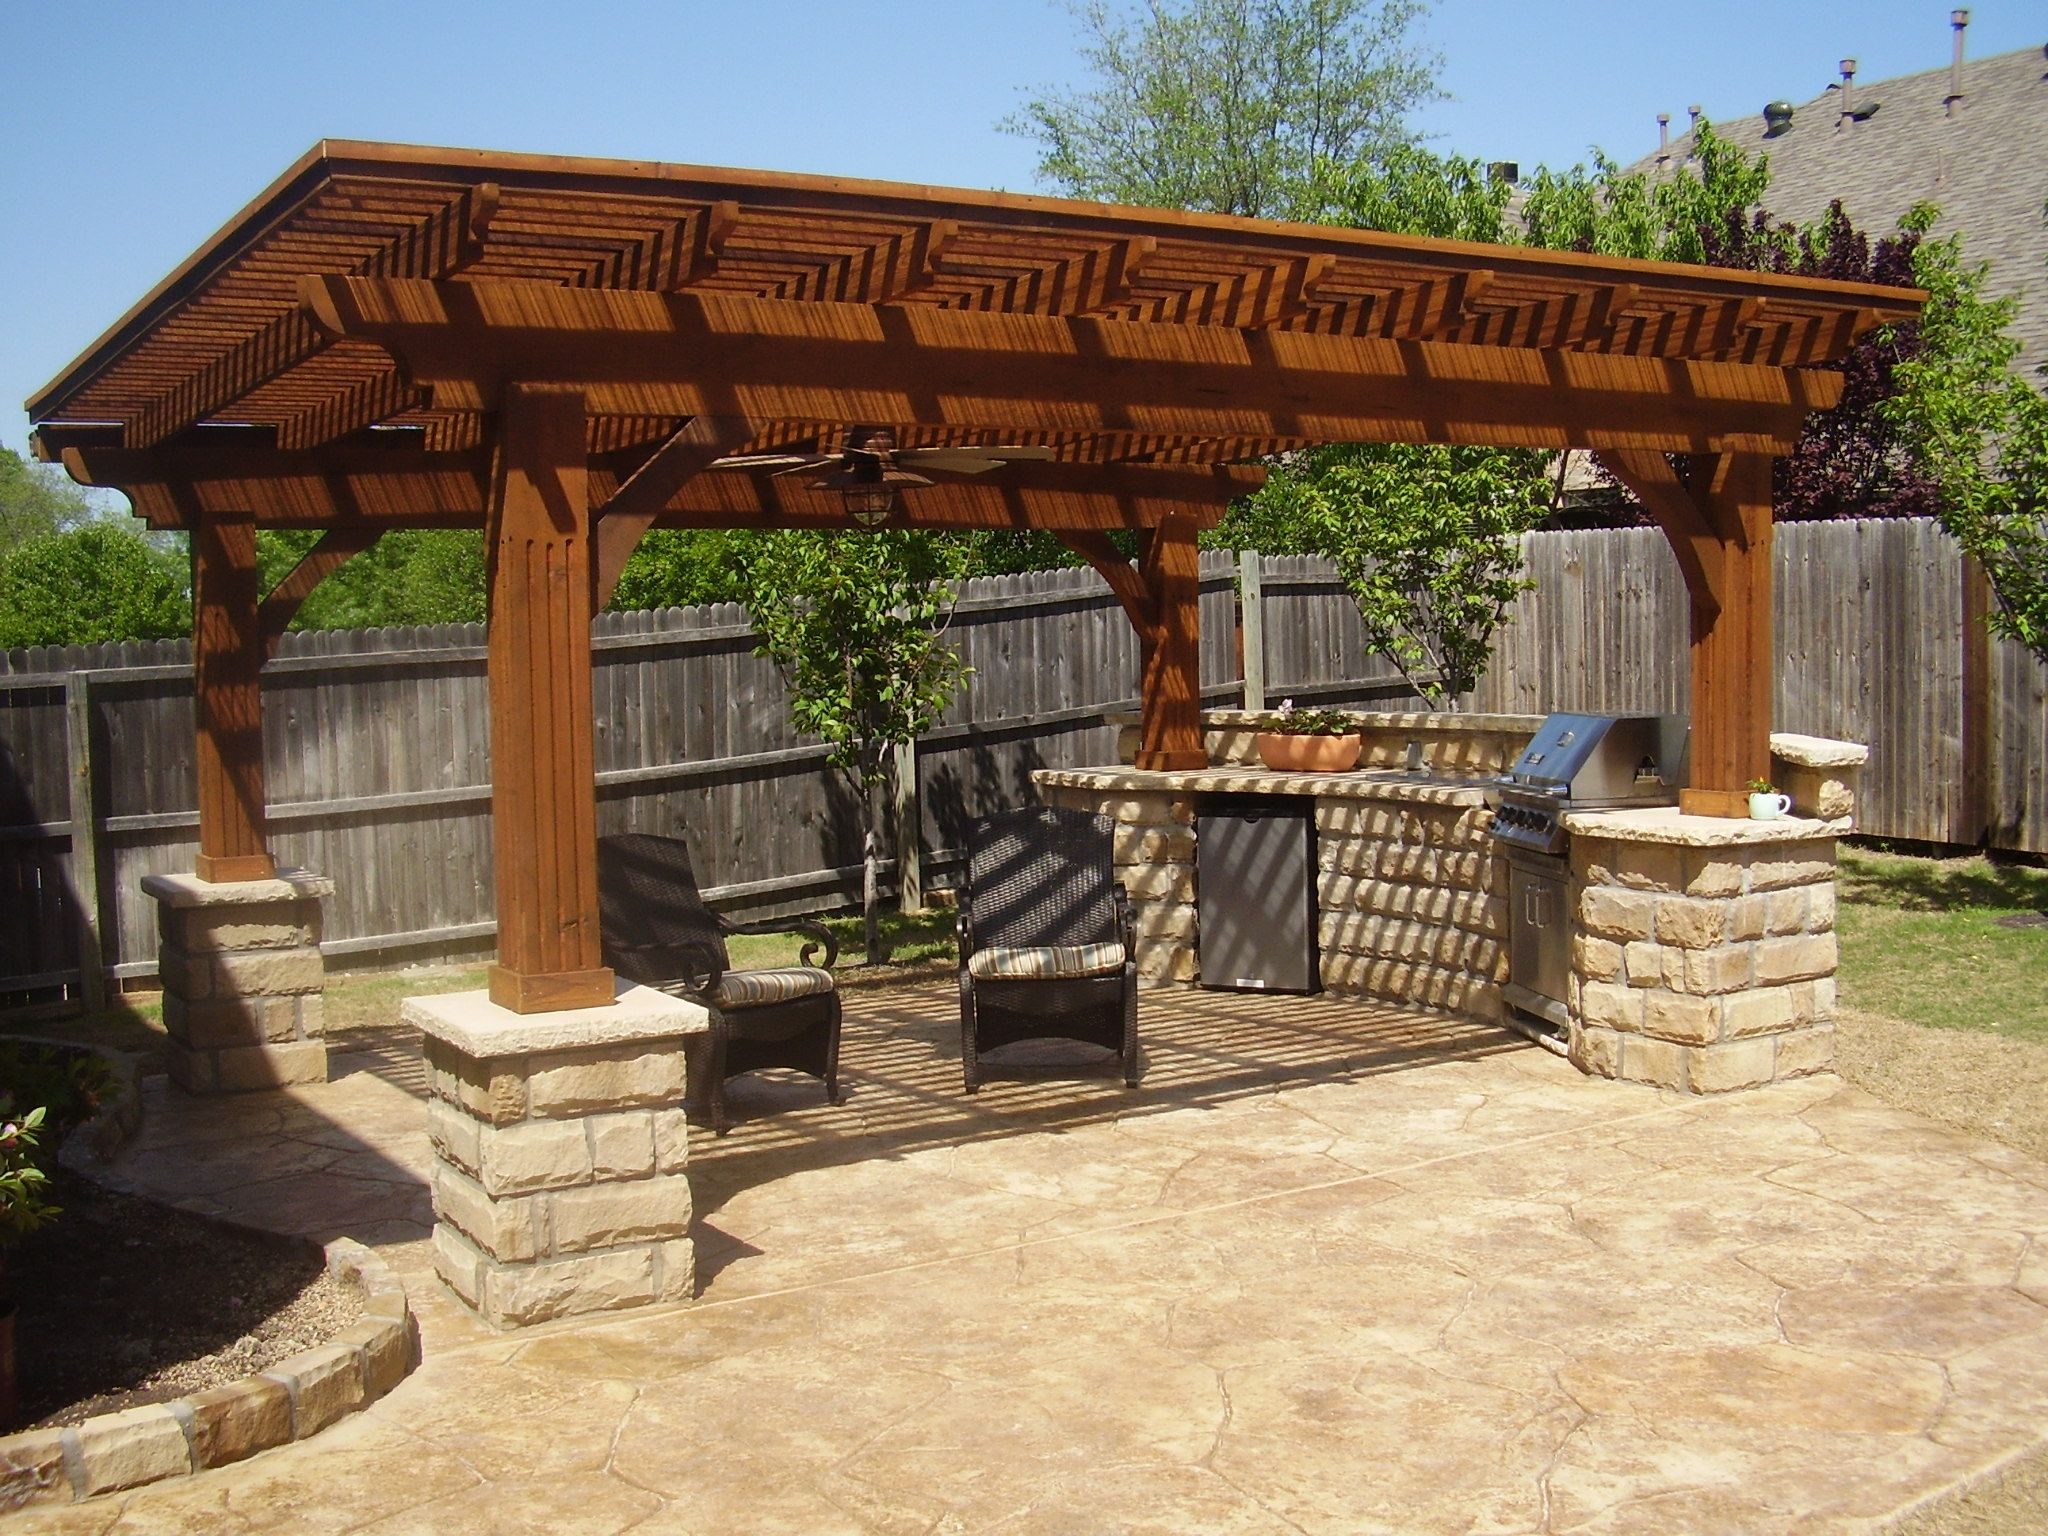 Cheap Backyard Bbq Ideas Complete Arbor Area With Bbq Grill And Sitting  Bench Area Awesome Outdoor